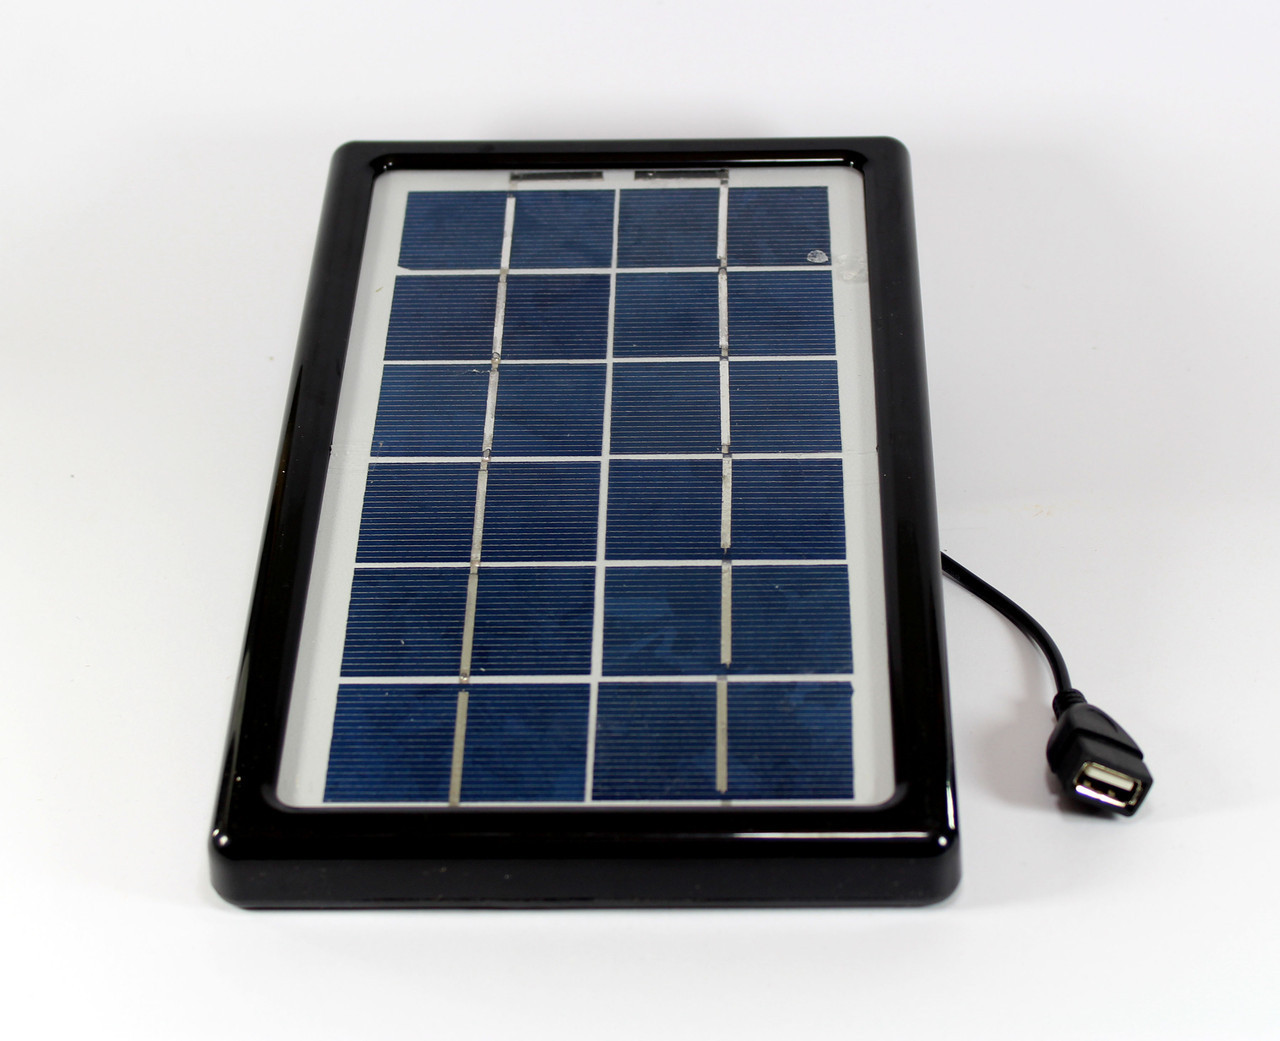 Solar board 3W-6V + mob. charger